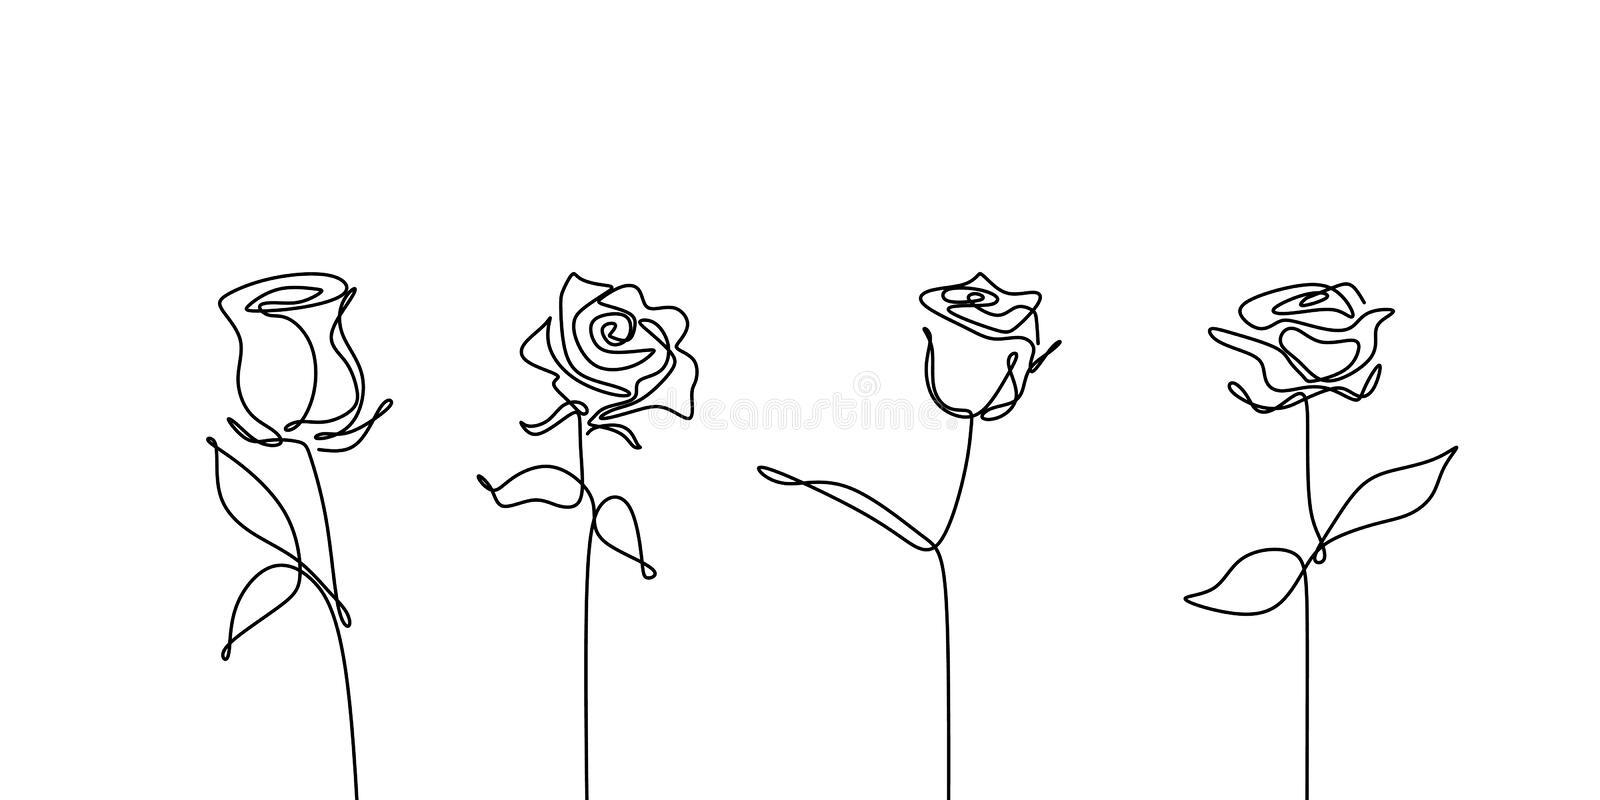 Continuous line drawing of rose flower set collections minimalism design royalty free illustration